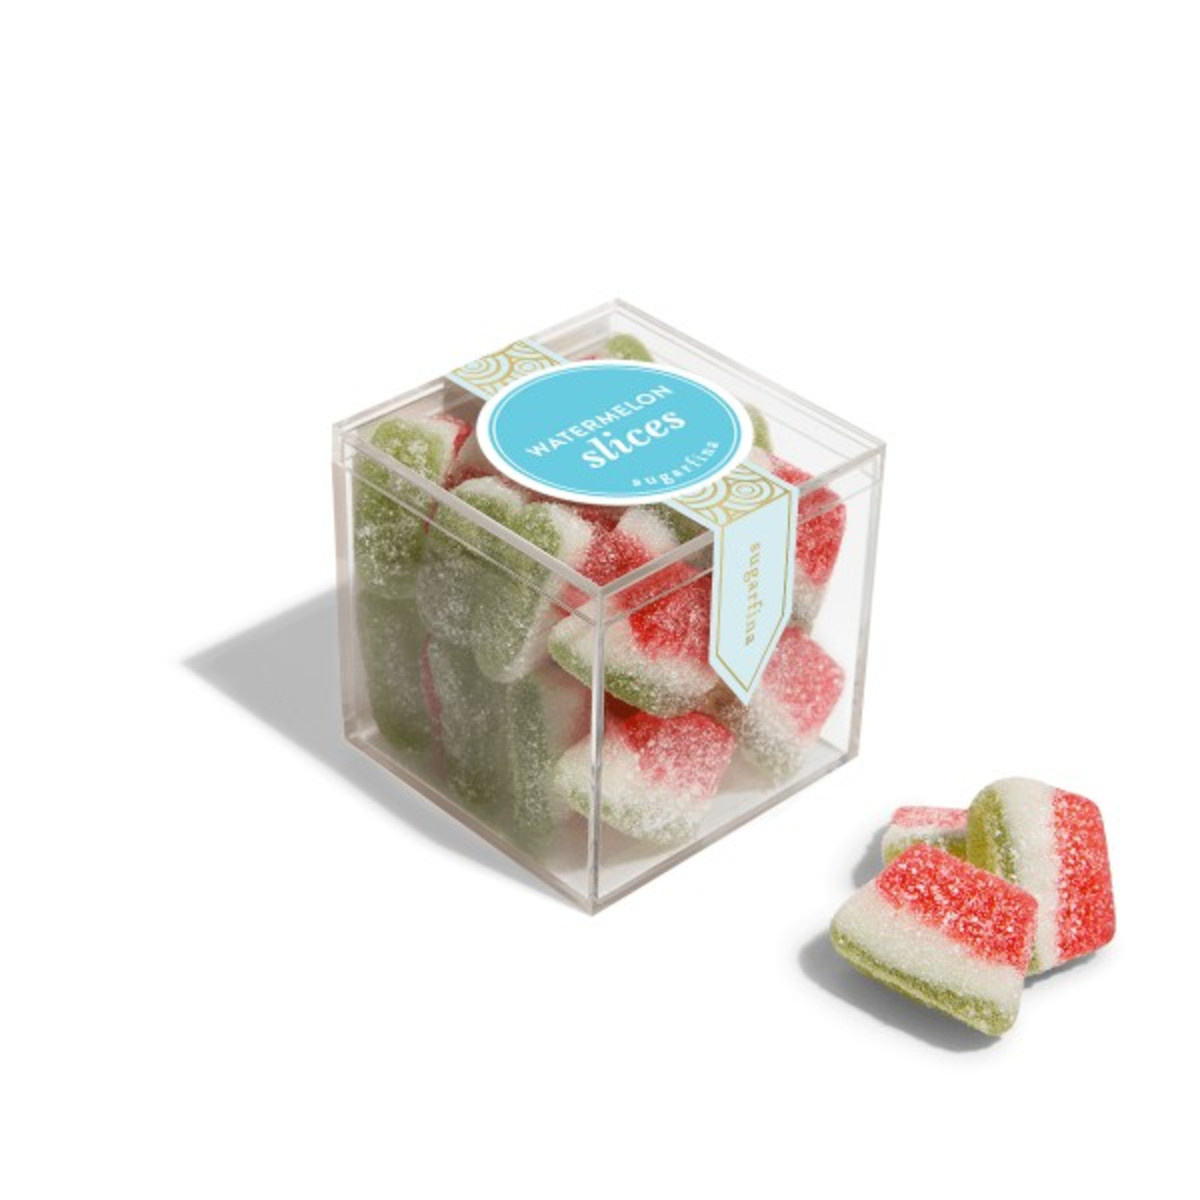 Sugarfina Watermelon Slice Gummies